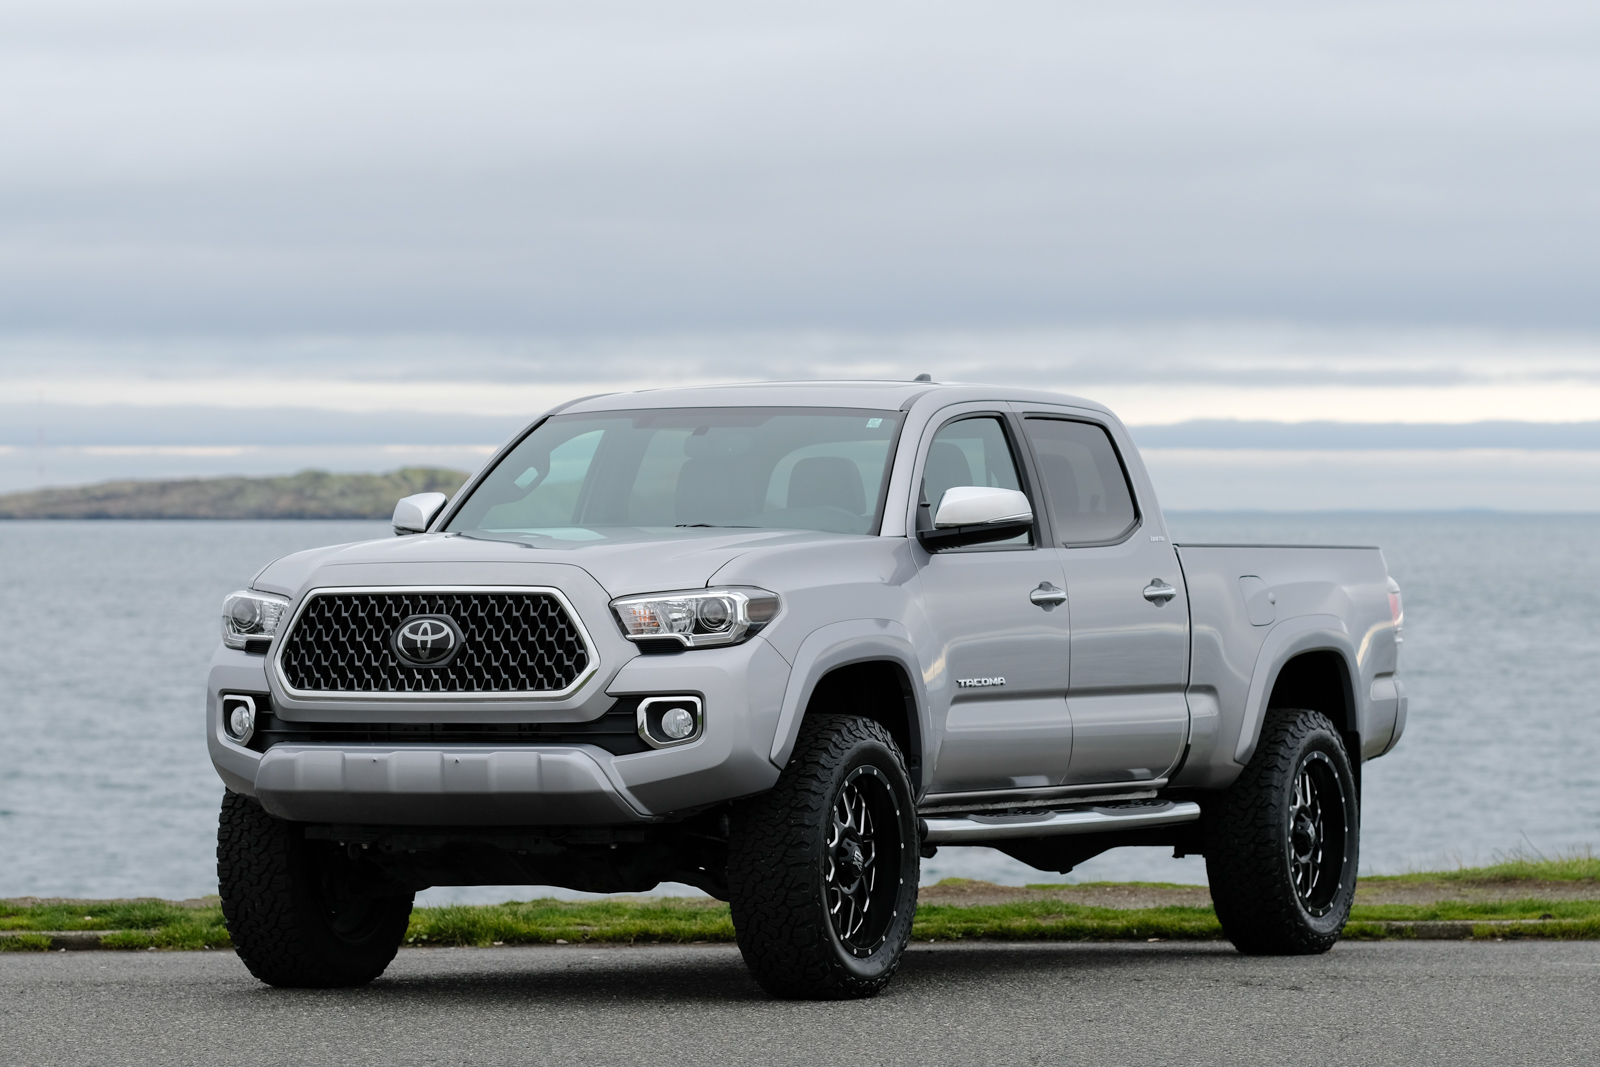 2017 Tacoma Trd Sport Price >> Silver Arrow Cars Ltd. | Premium Auto-Dealership & Broker | Victoria, BC